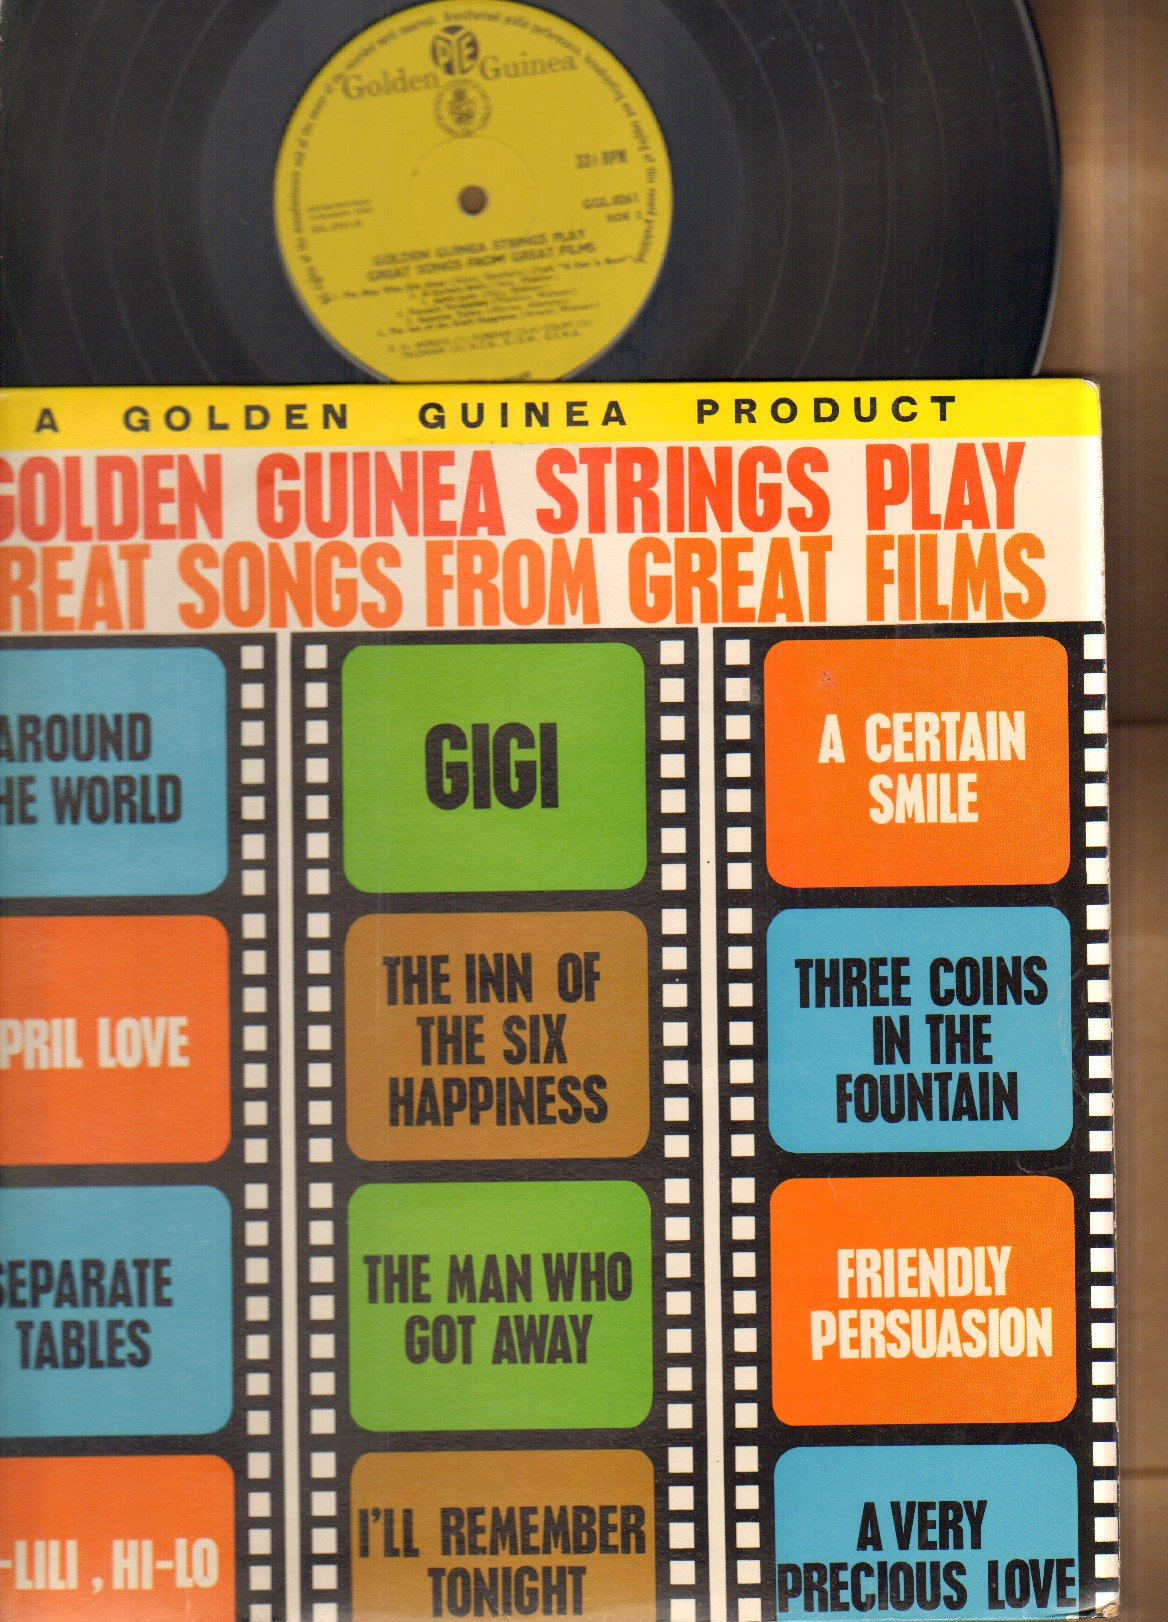 GOLDEN GUINEA STRINGS PLAY GREAT SONGS FROM GREAT FILMS